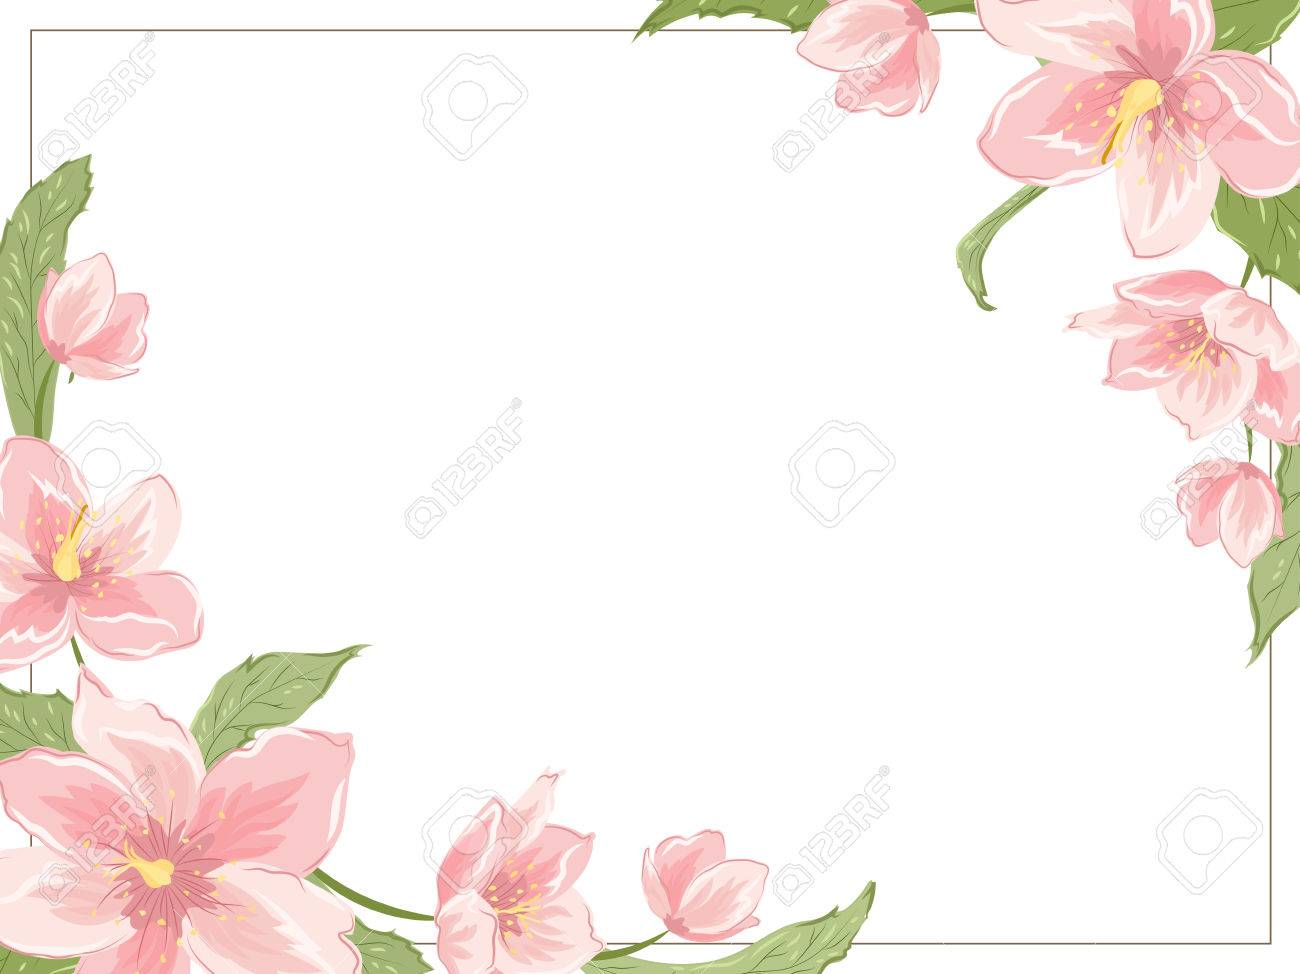 Corner frame template with sakura magnolia hellebore flowers corner frame template with sakura magnolia hellebore flowers on white background horizontal landscape orientation stopboris Choice Image